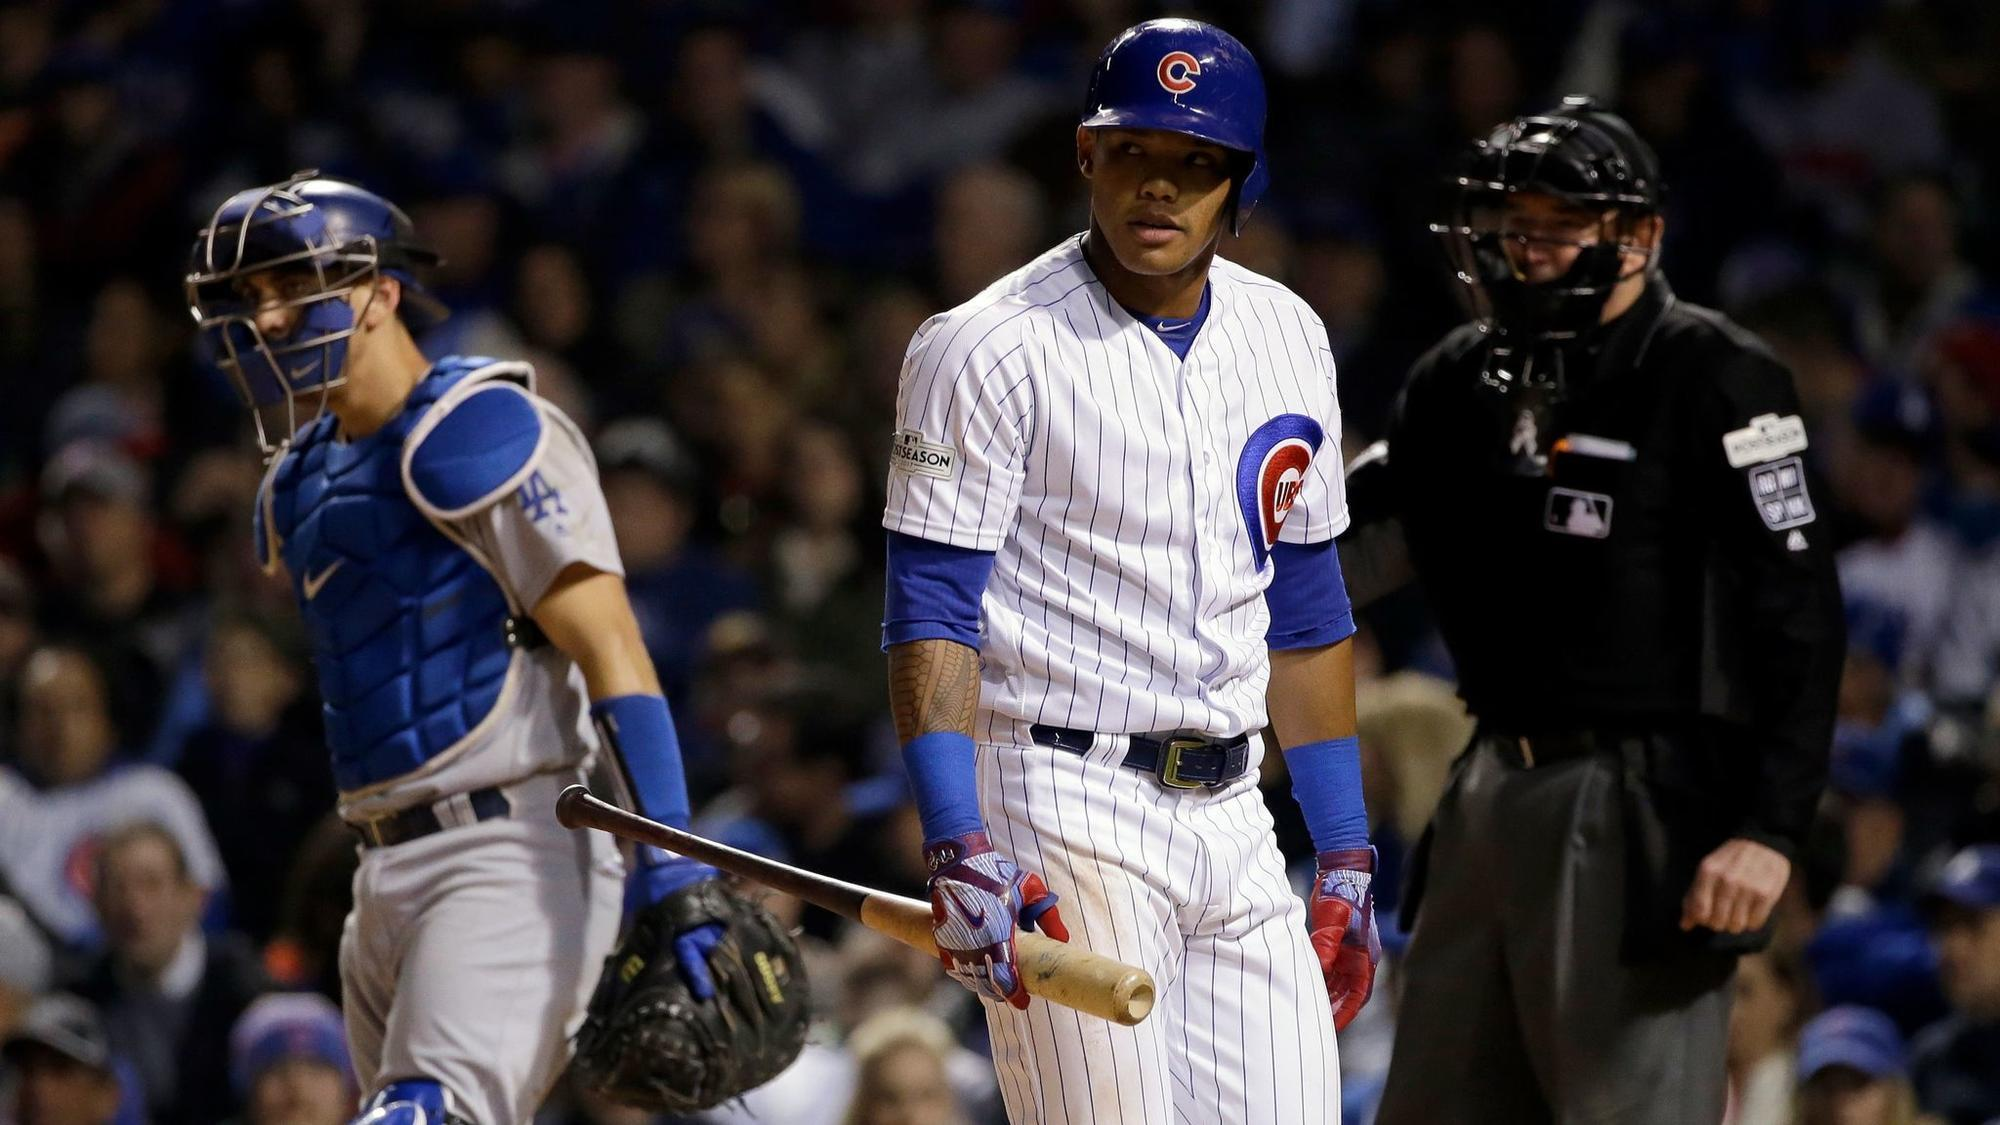 Ct-spt-cubs-dodgers-high-pitch-strategy-20180221